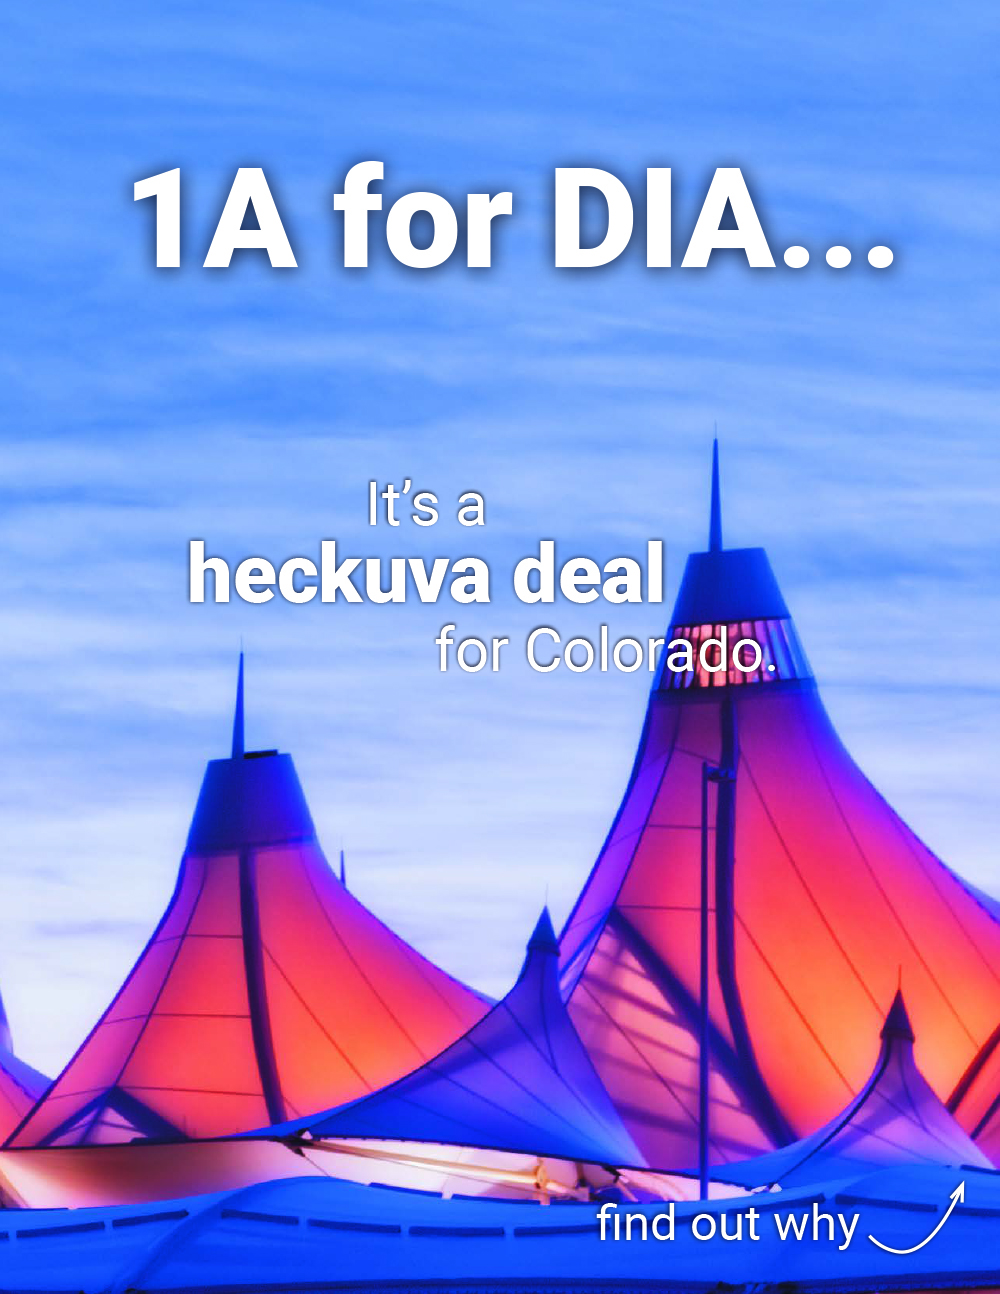 1A for DIA VIP mailer, front